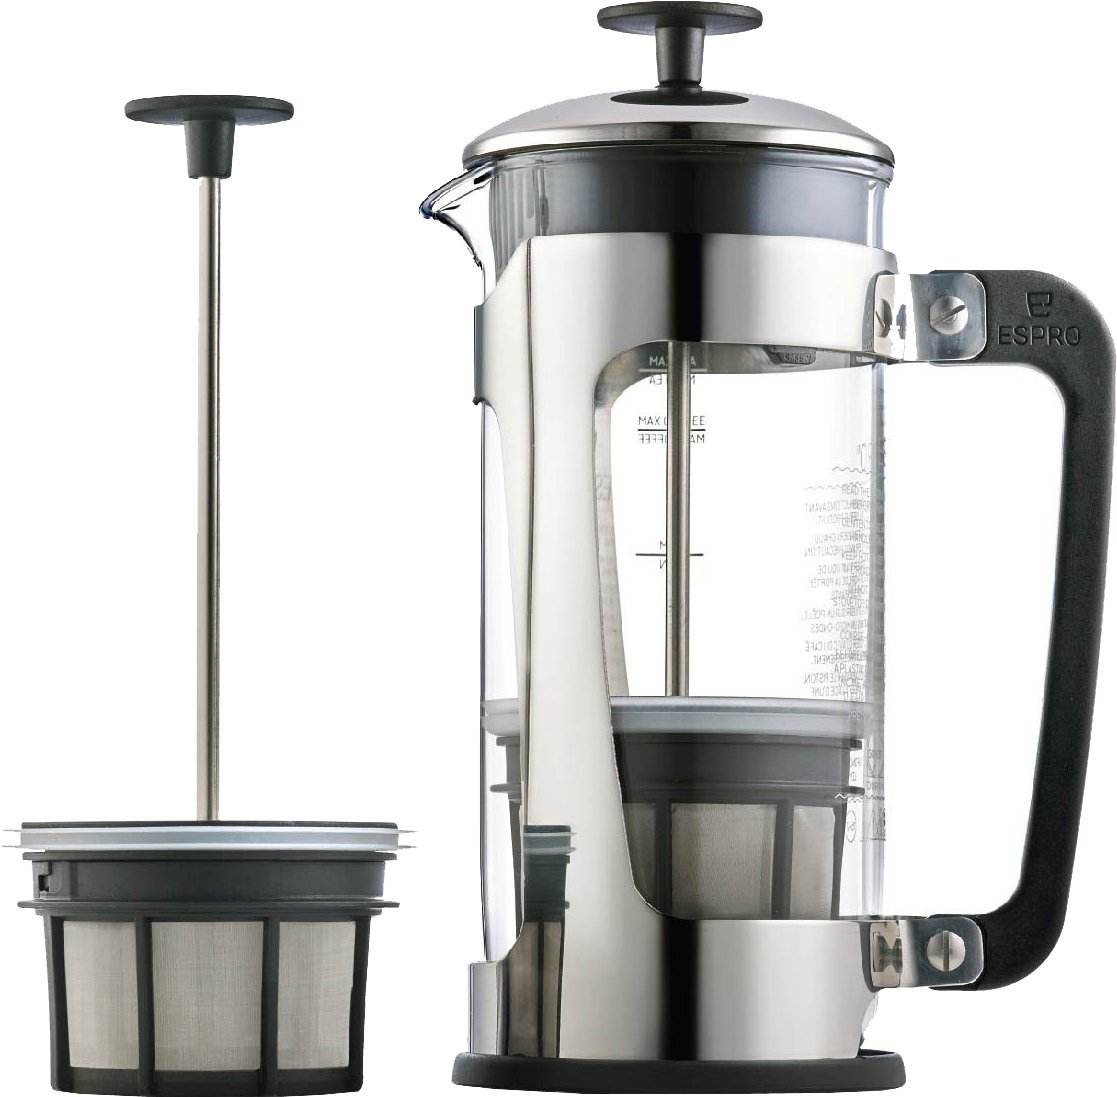 2Espro Coffee Press P5 18 oz Glass Carafe and Stainless Steel Cage French Press Stainless Steel Coffee Makers